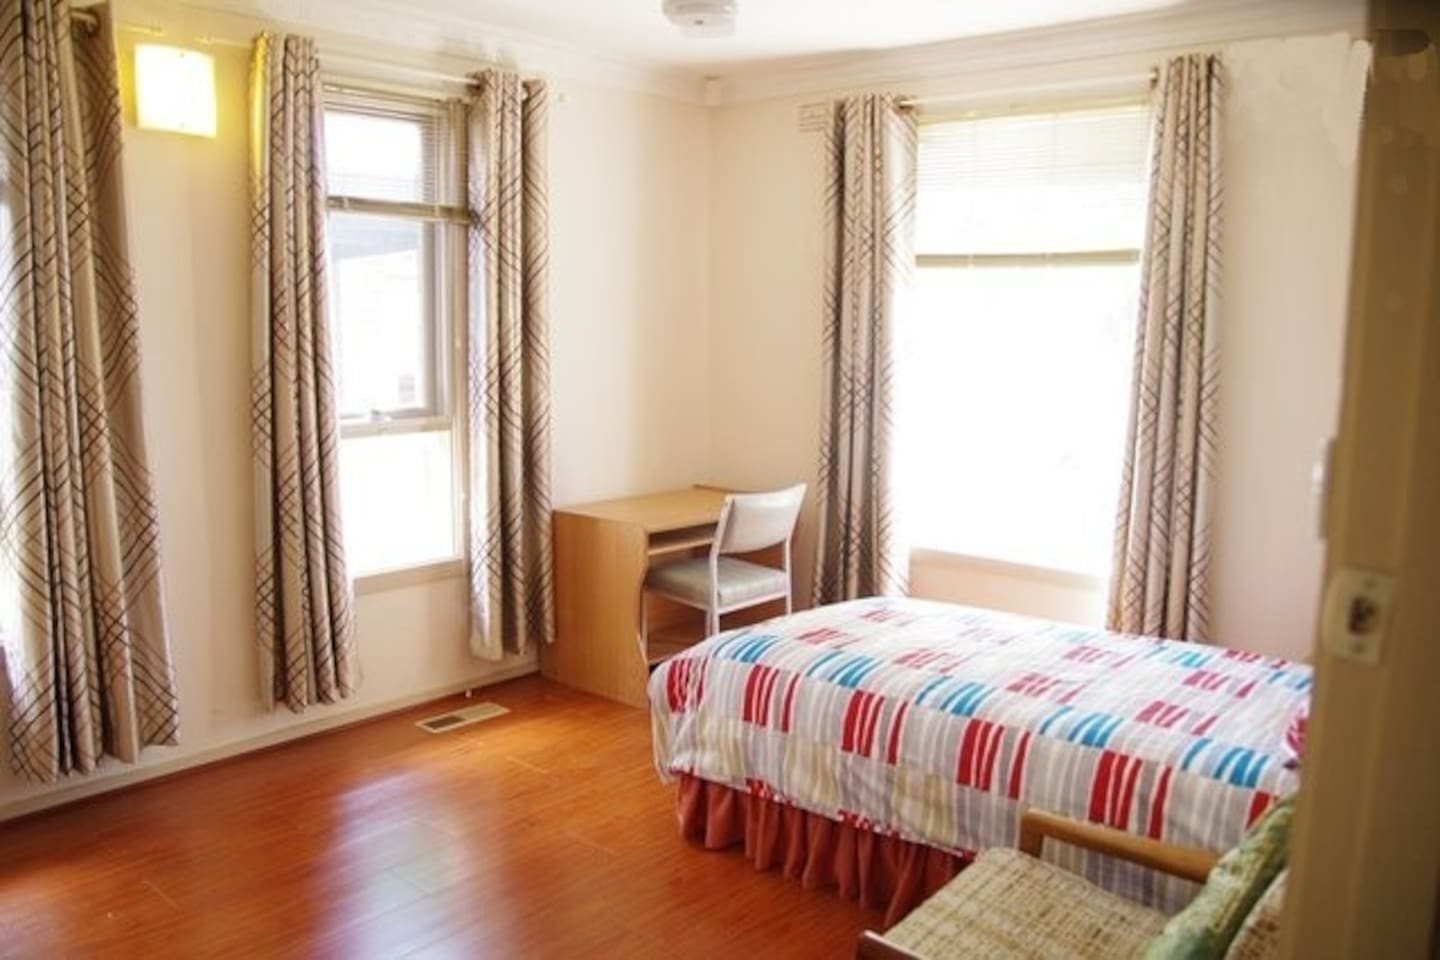 Affordable and Comfy Room Available